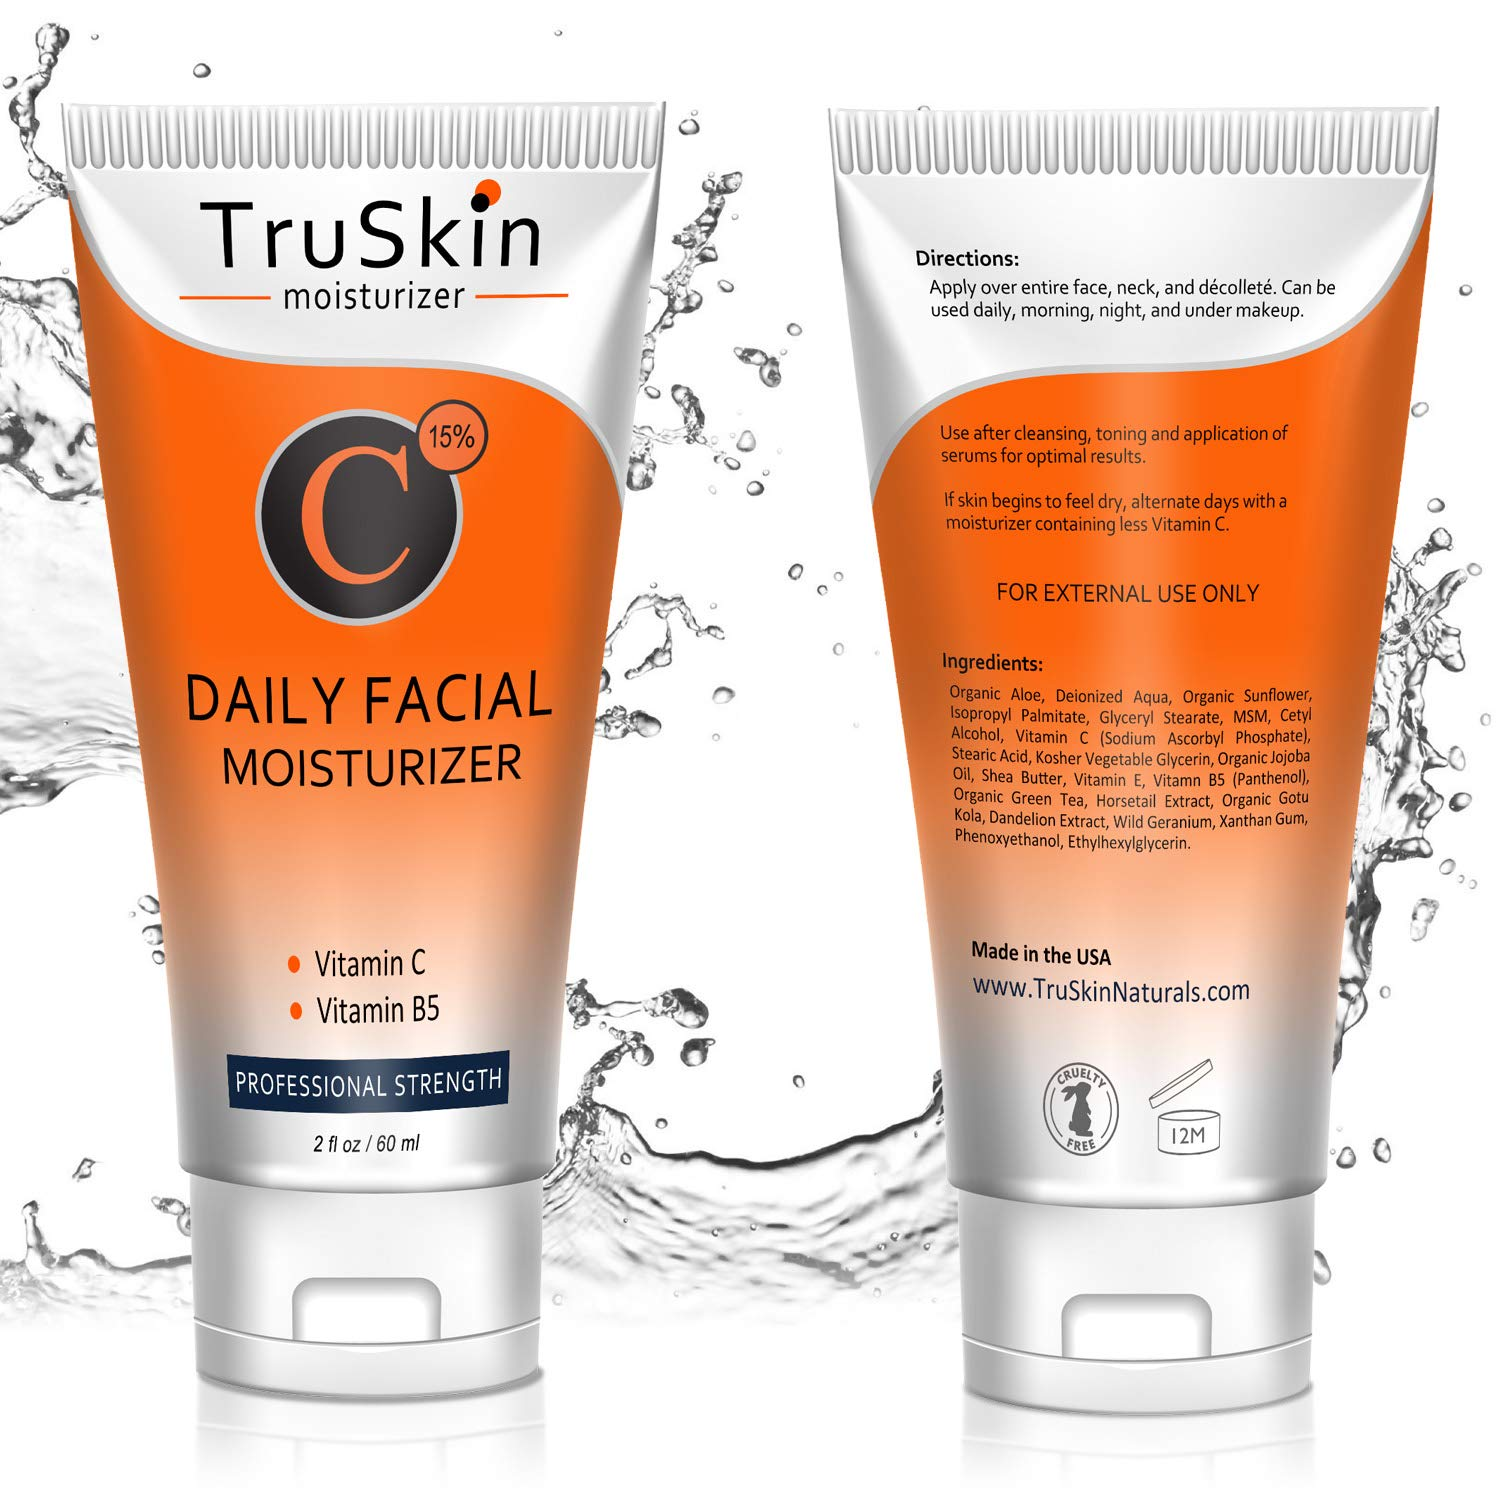 BEST Vitamin C Moisturizer Cream for Face, Neck & Décolleté for Anti-Aging, Wrinkles, Age Spots, Skin Tone, Neck Firming, and Dark Circles